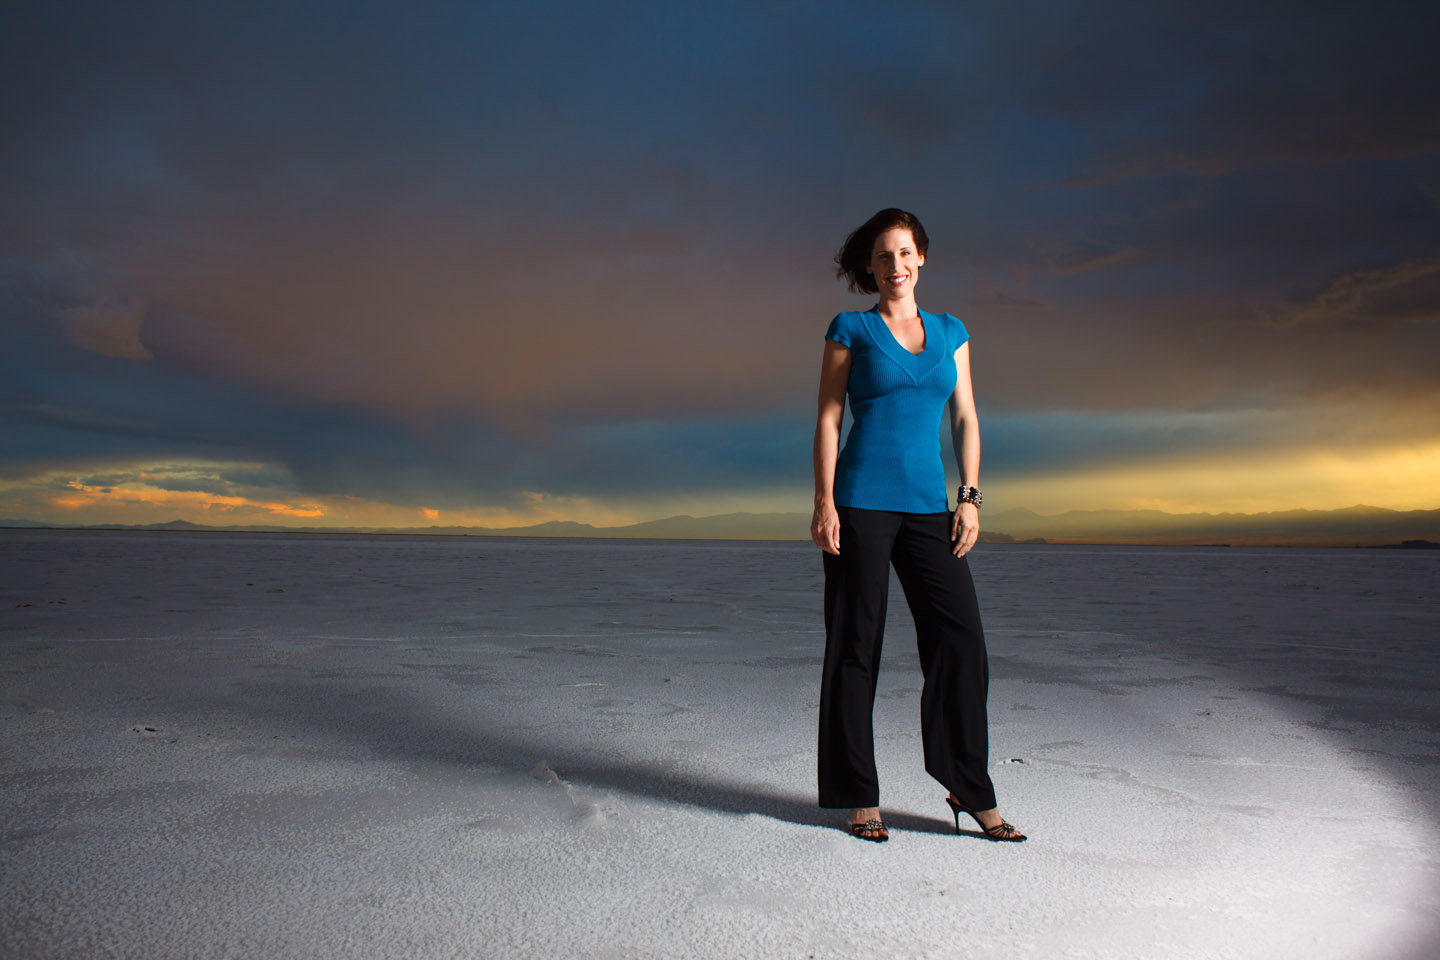 Storm on Salt Flats perfect for portrait